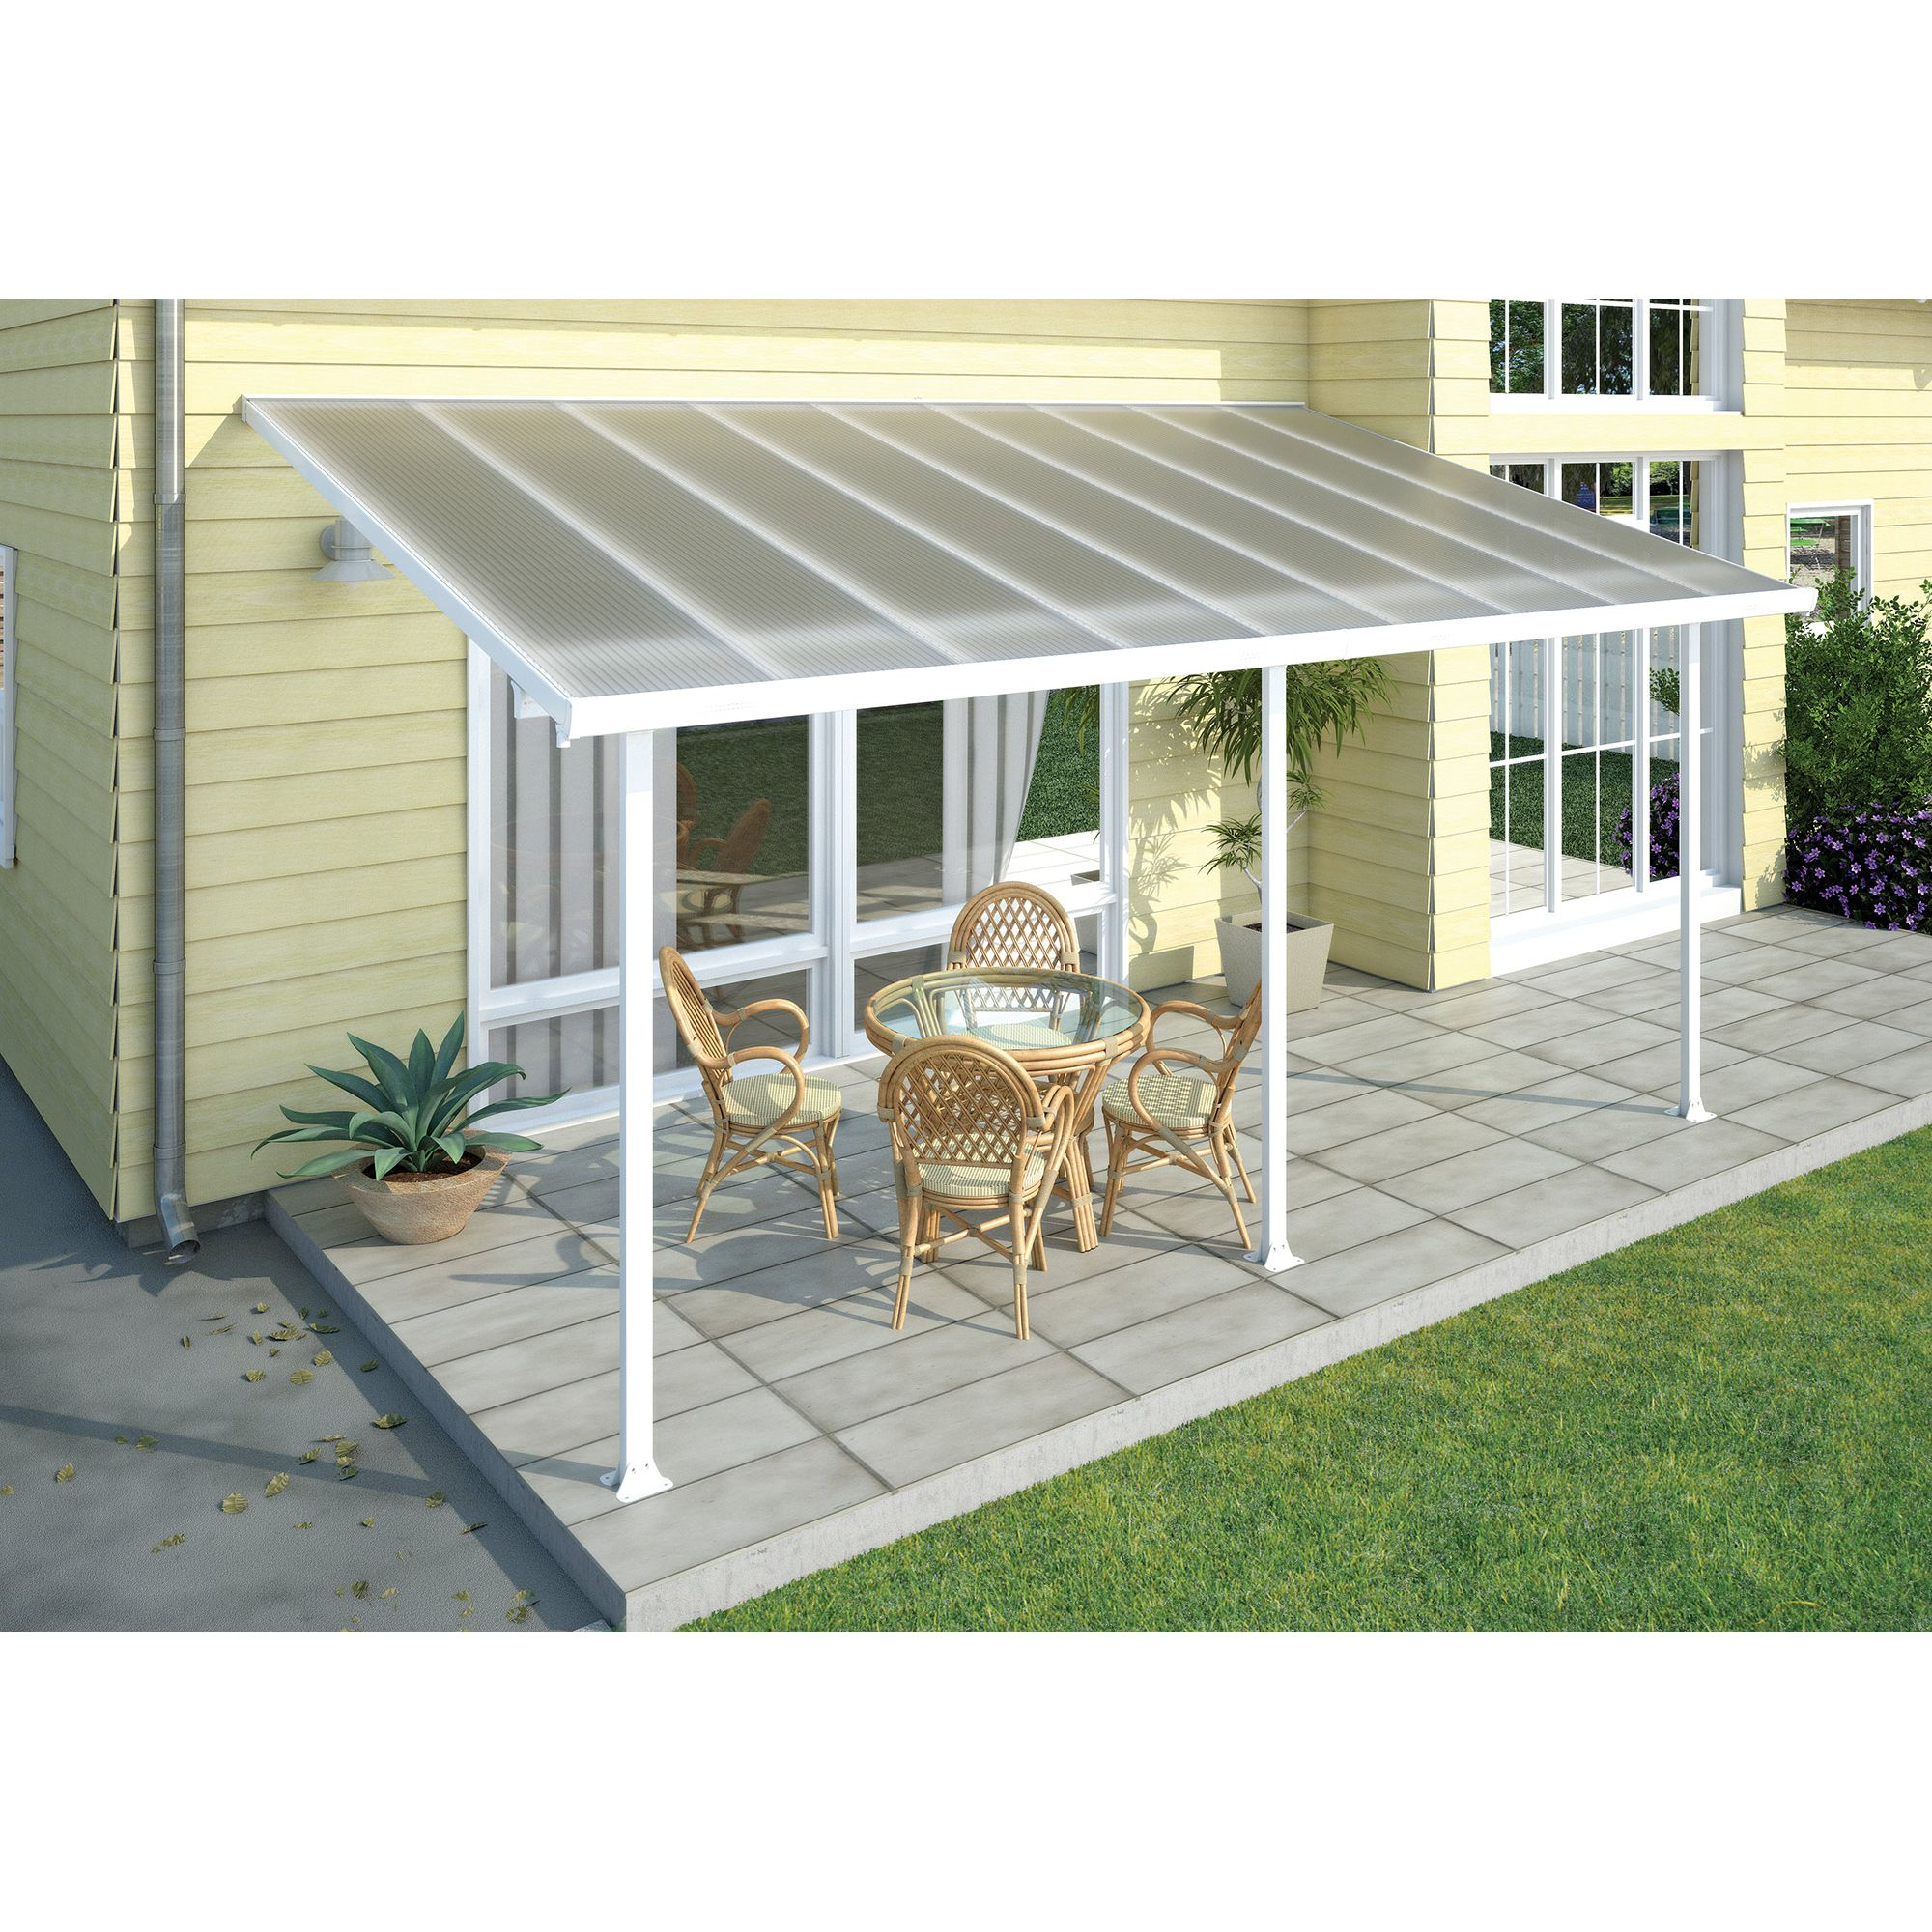 FERIA LEAN TO CARPORT AND PATIO COVER 3X13.40 WHITE at Tesco Direct